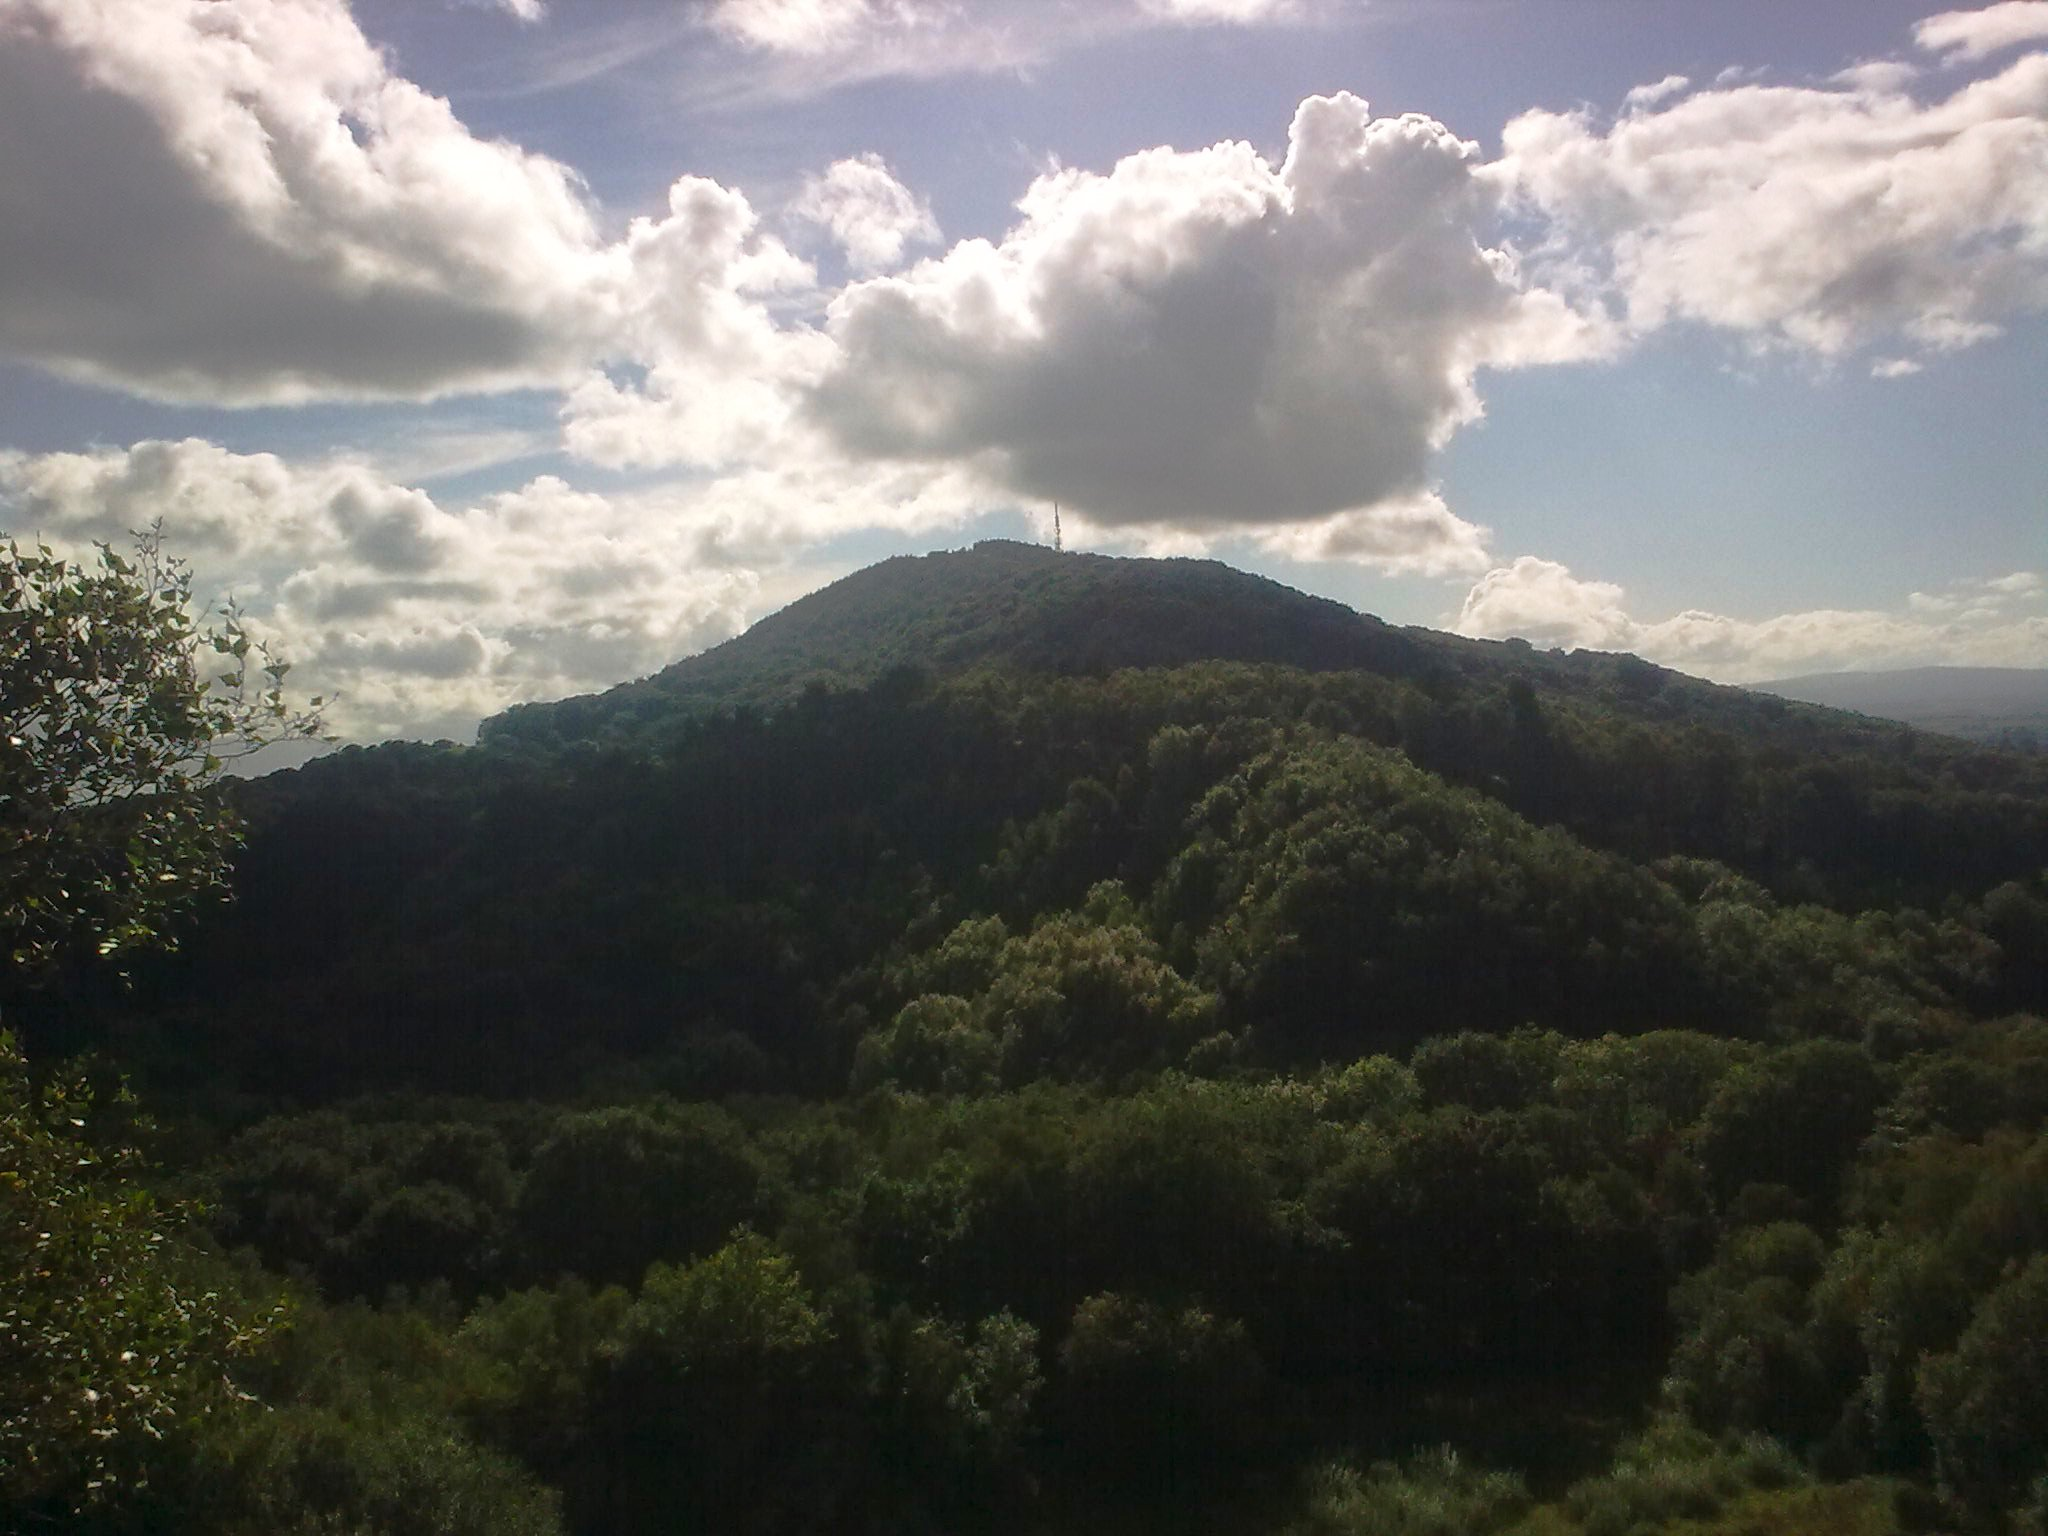 The_Wrekin_from_the_Ercall